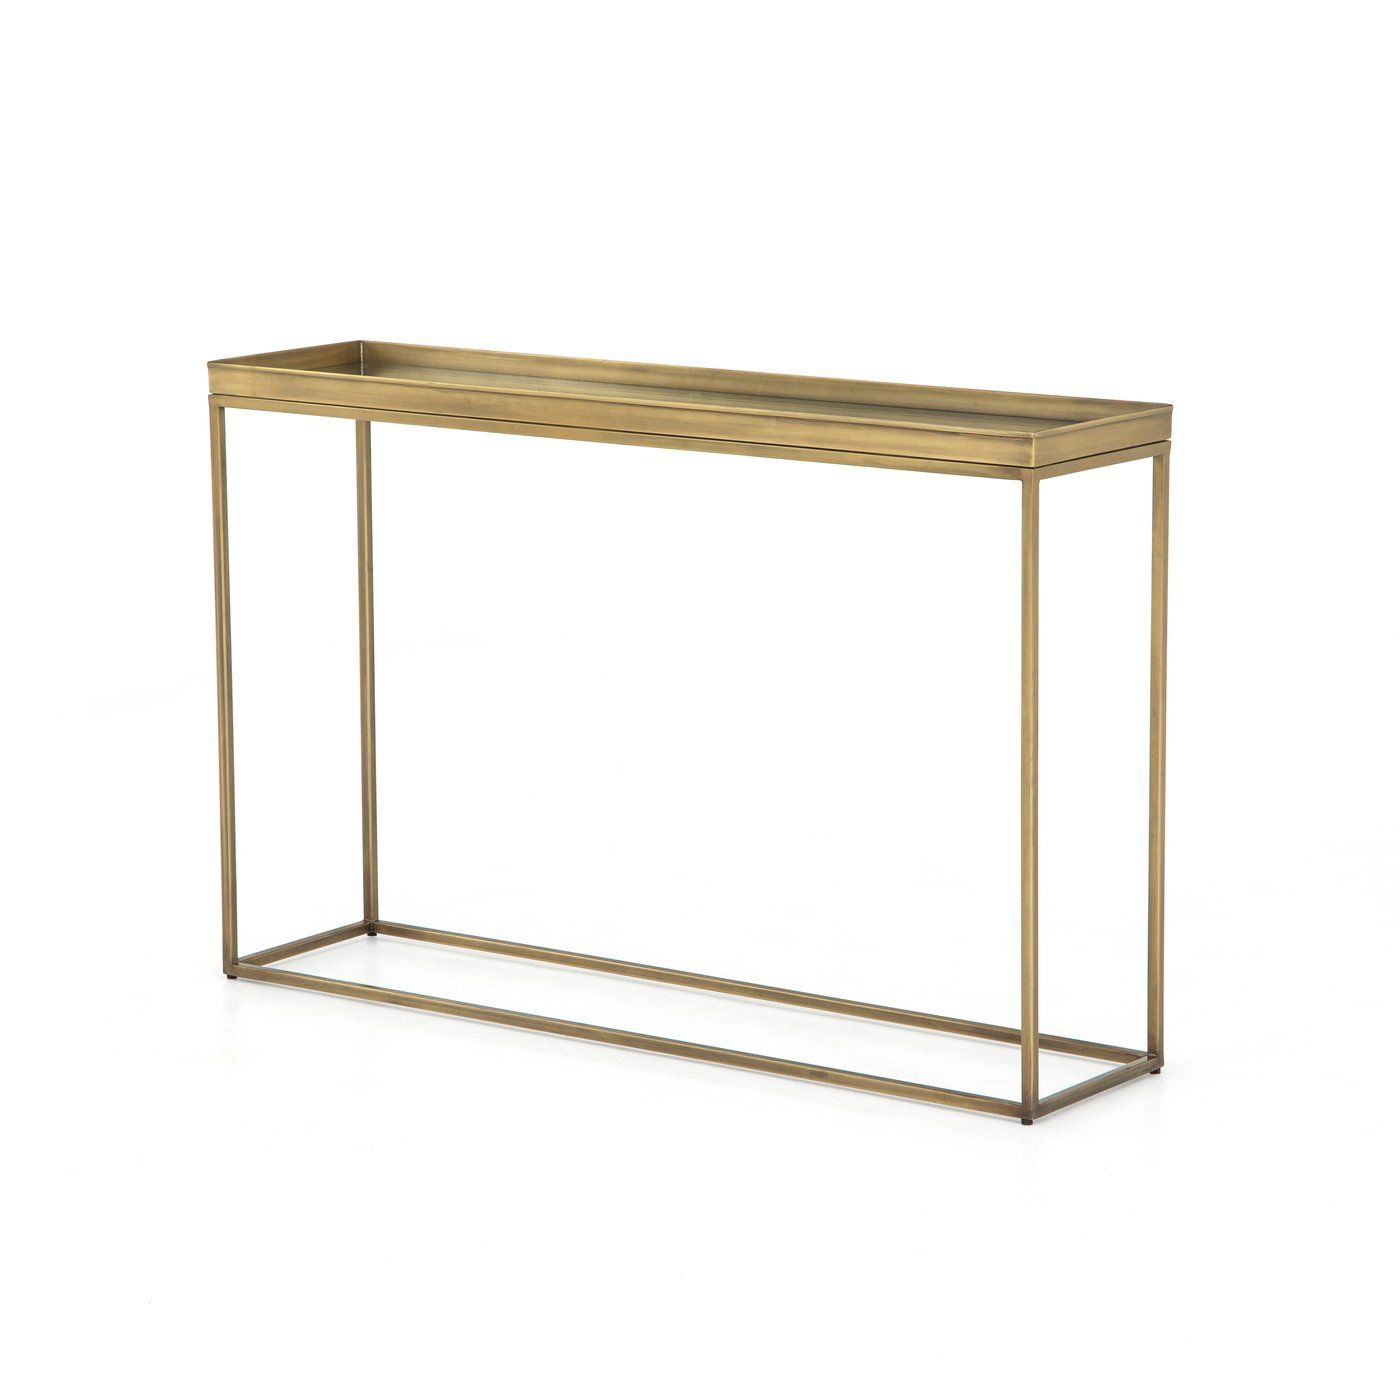 Phoebe Console Table In 2021 Brass Console Table Console Table Dining Table Chairs [ 1400 x 1400 Pixel ]